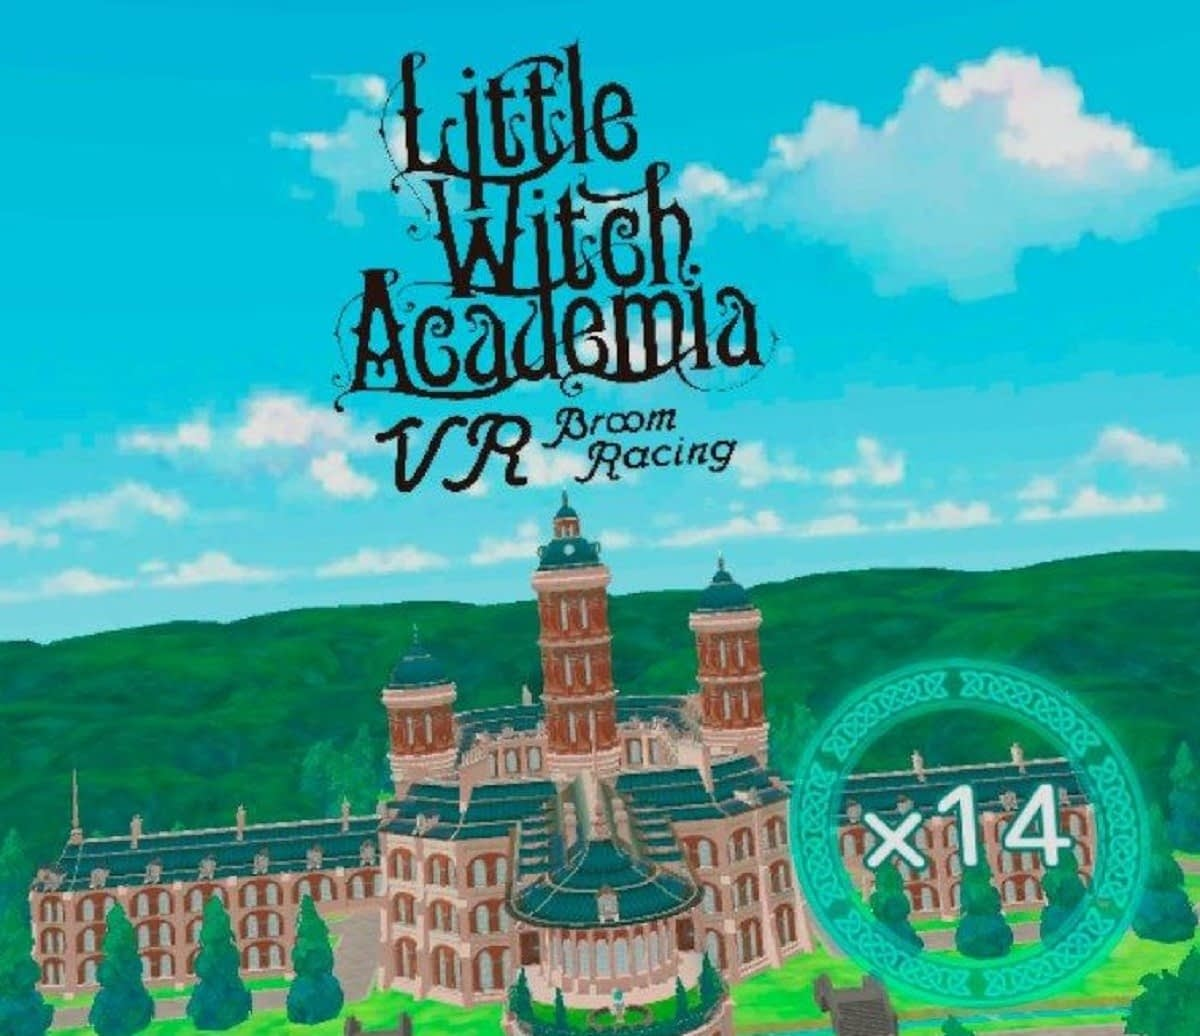 Little Witch Academia VR Broom Racing Review